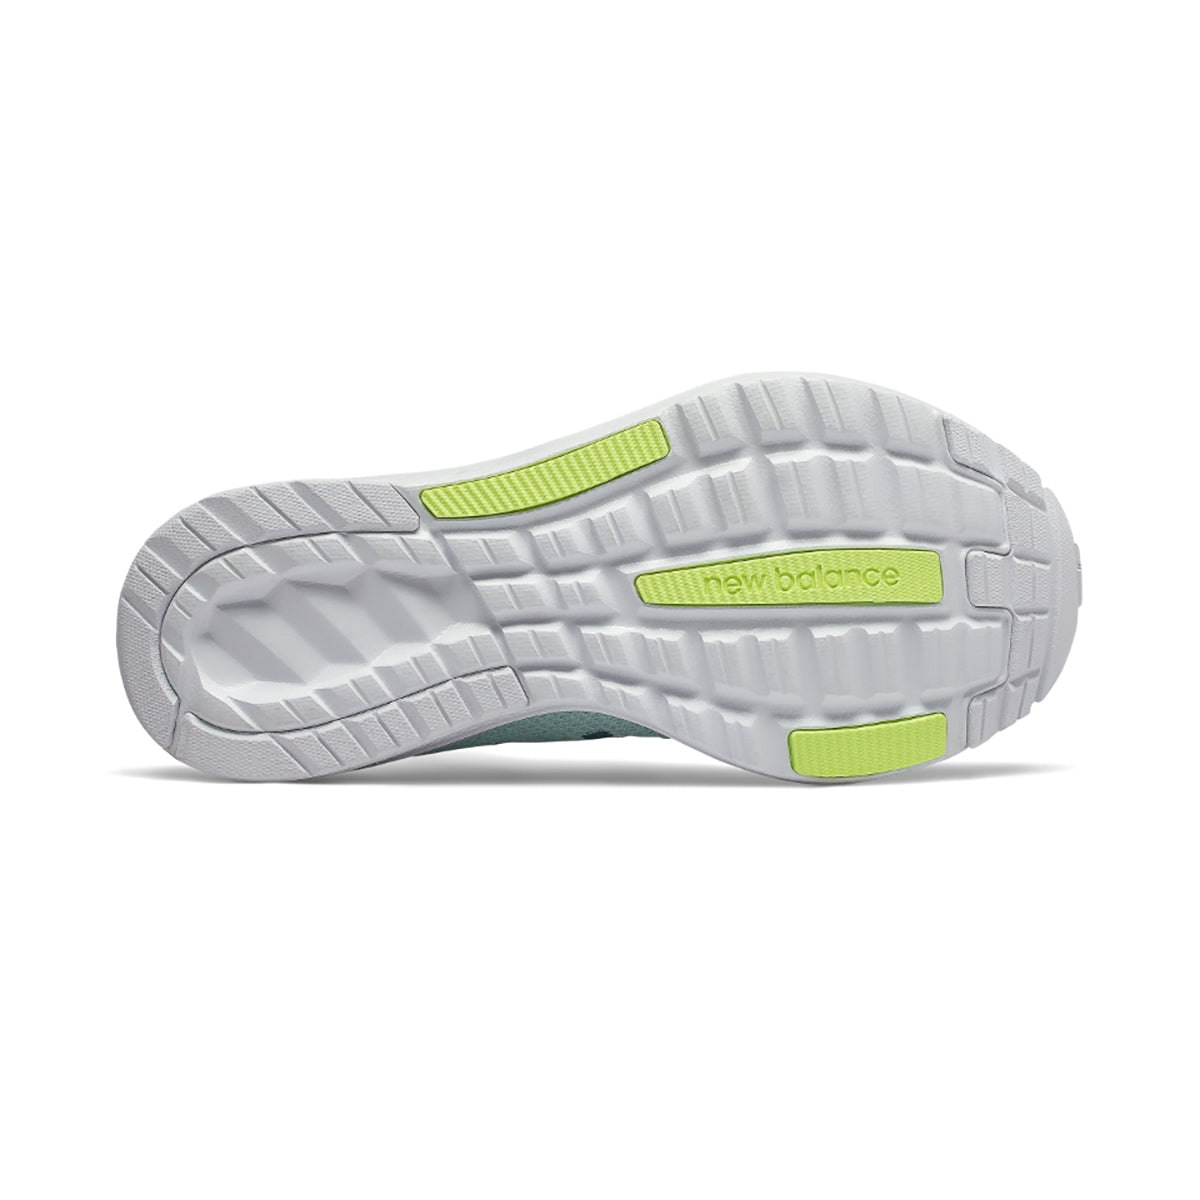 info for b6321 3a048 Women s 890v7 Running Shoes - Crystal Sage Dark Agave Bleached Lime ...